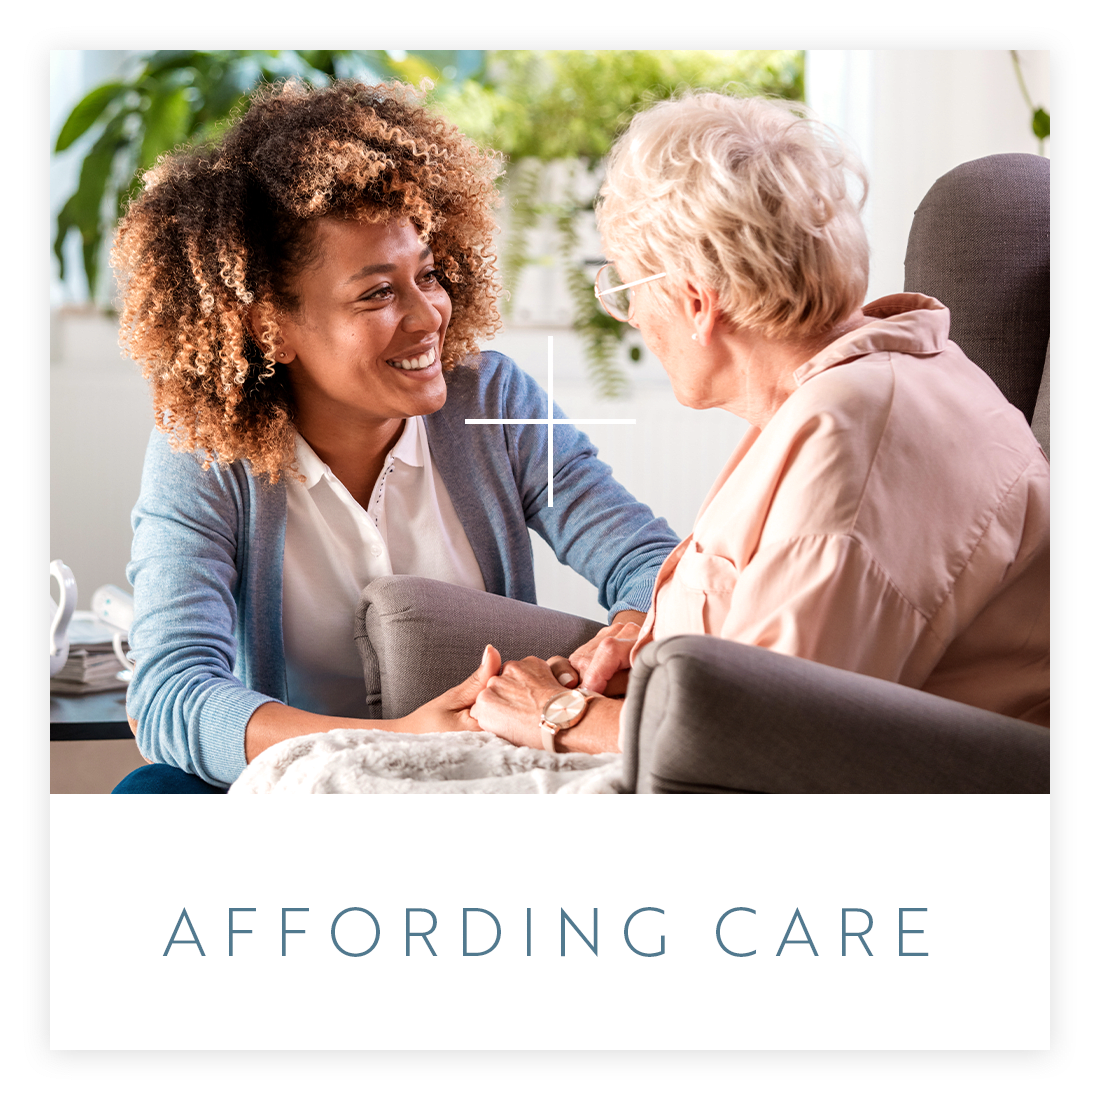 Learn about affording care at The Meridian at Boca Raton in Boca Raton, Florida